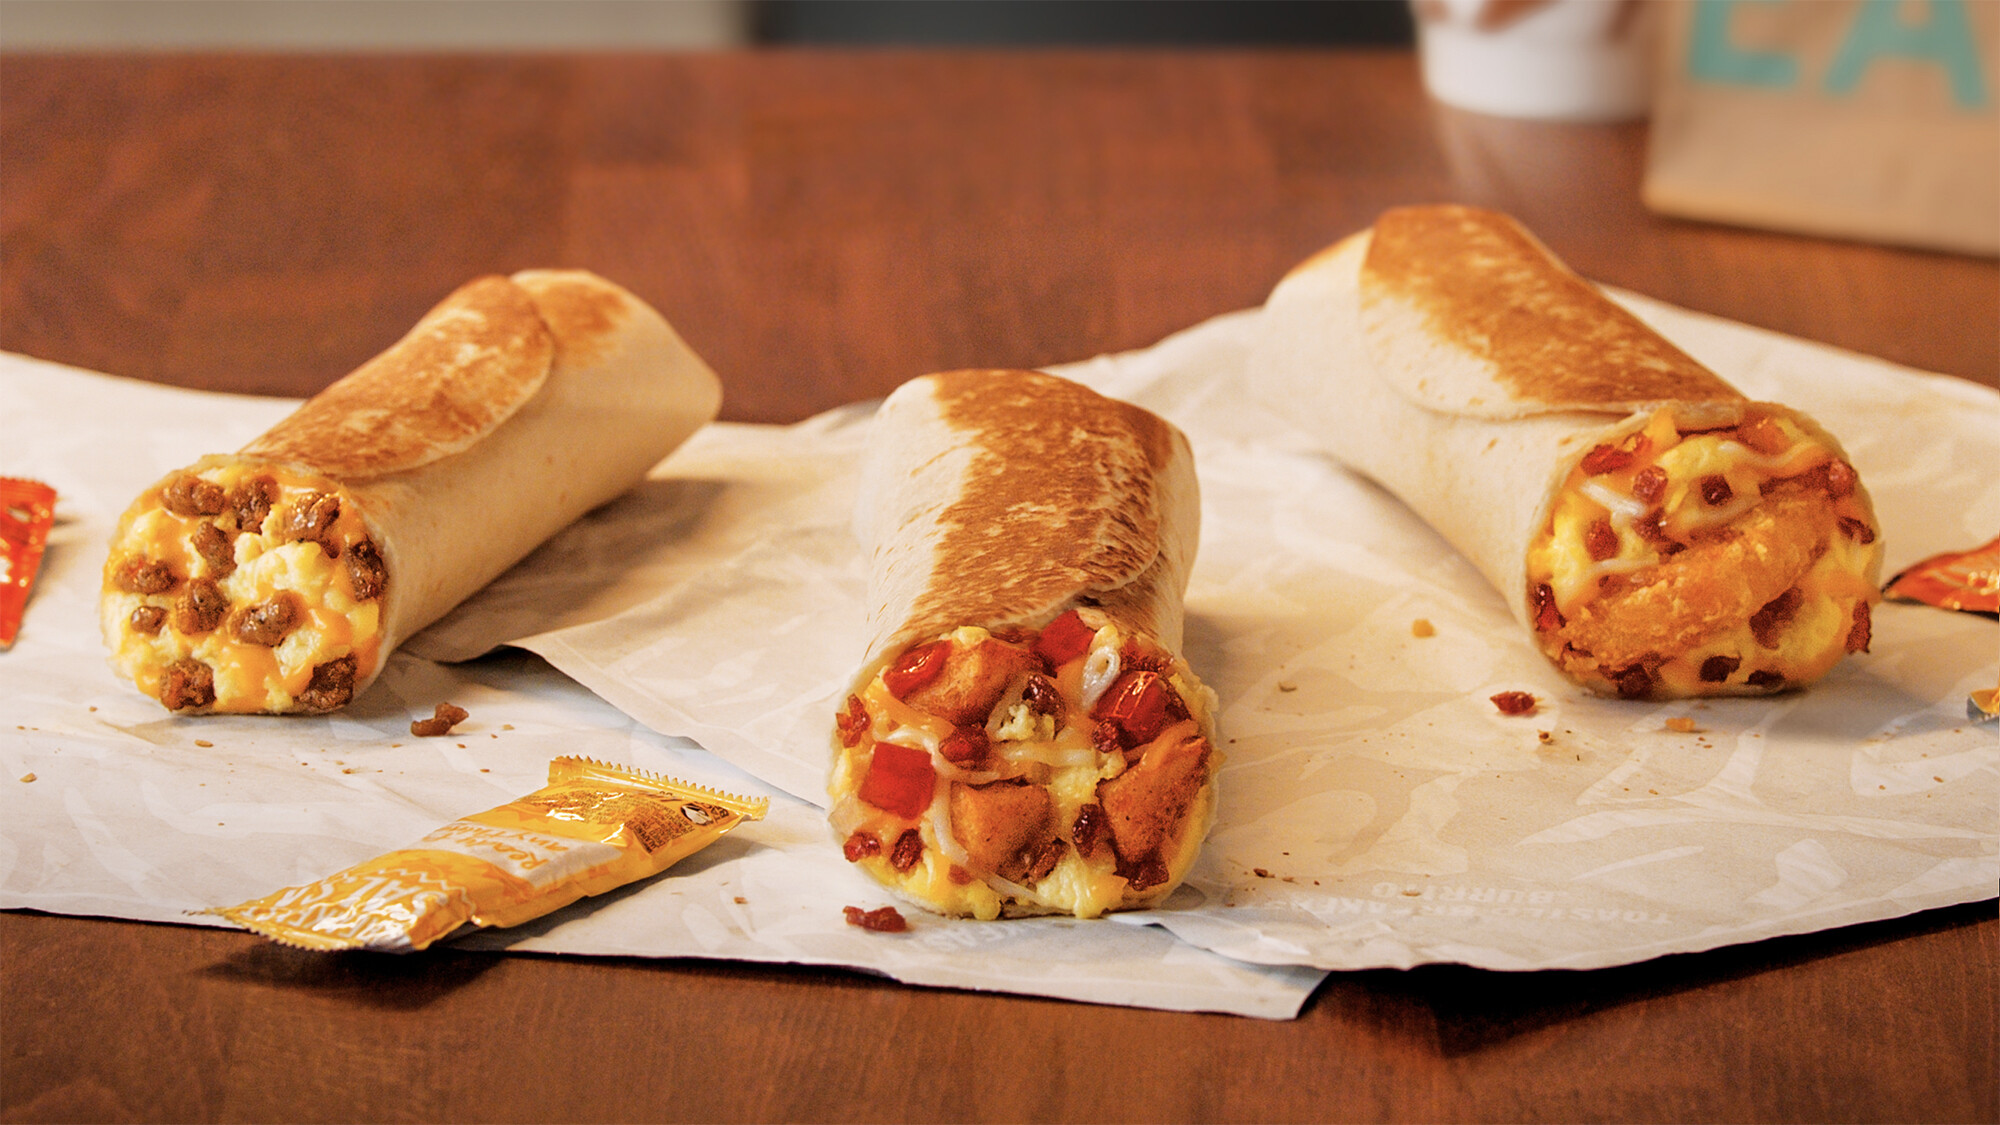 Taco Bell is giving away free breakfast burritos